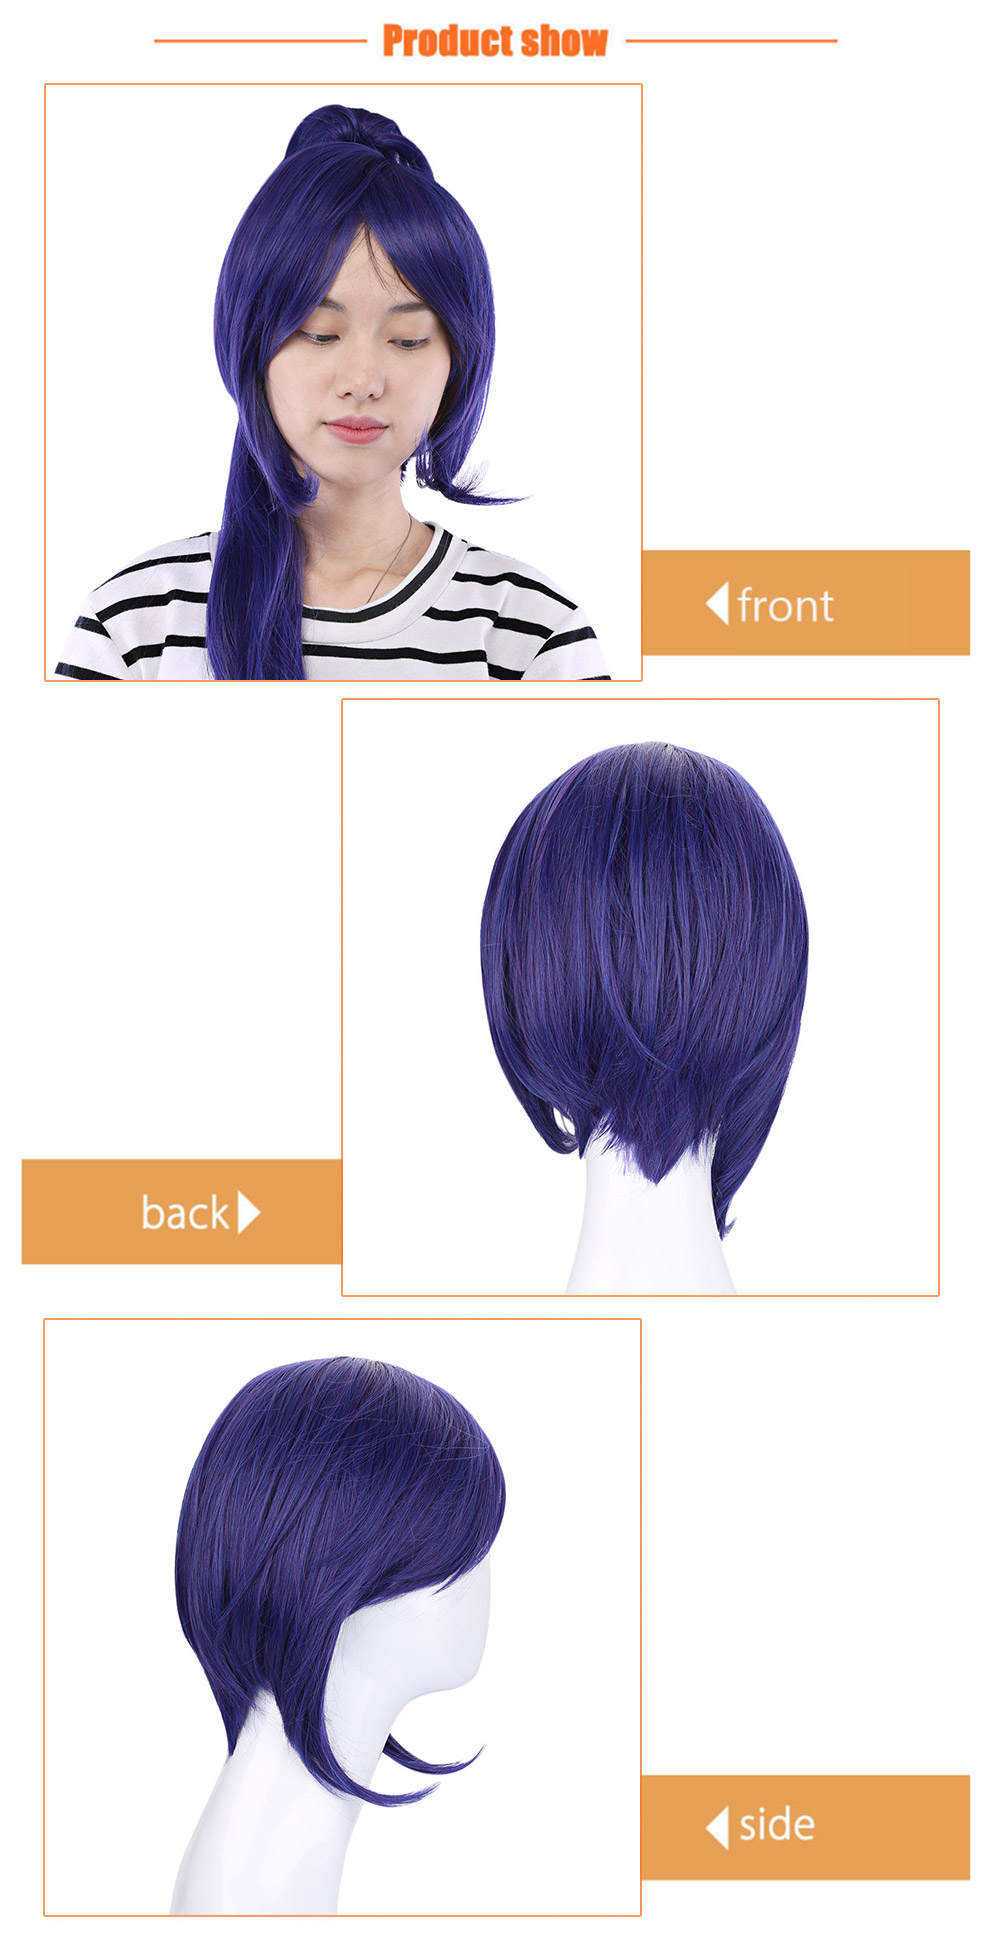 64CM Long Full Wigs with Ponytail Heat Resistant Synthetic Hair Anime Cosplay Party for Sunshine Aqours Matsuura Kanan Figure